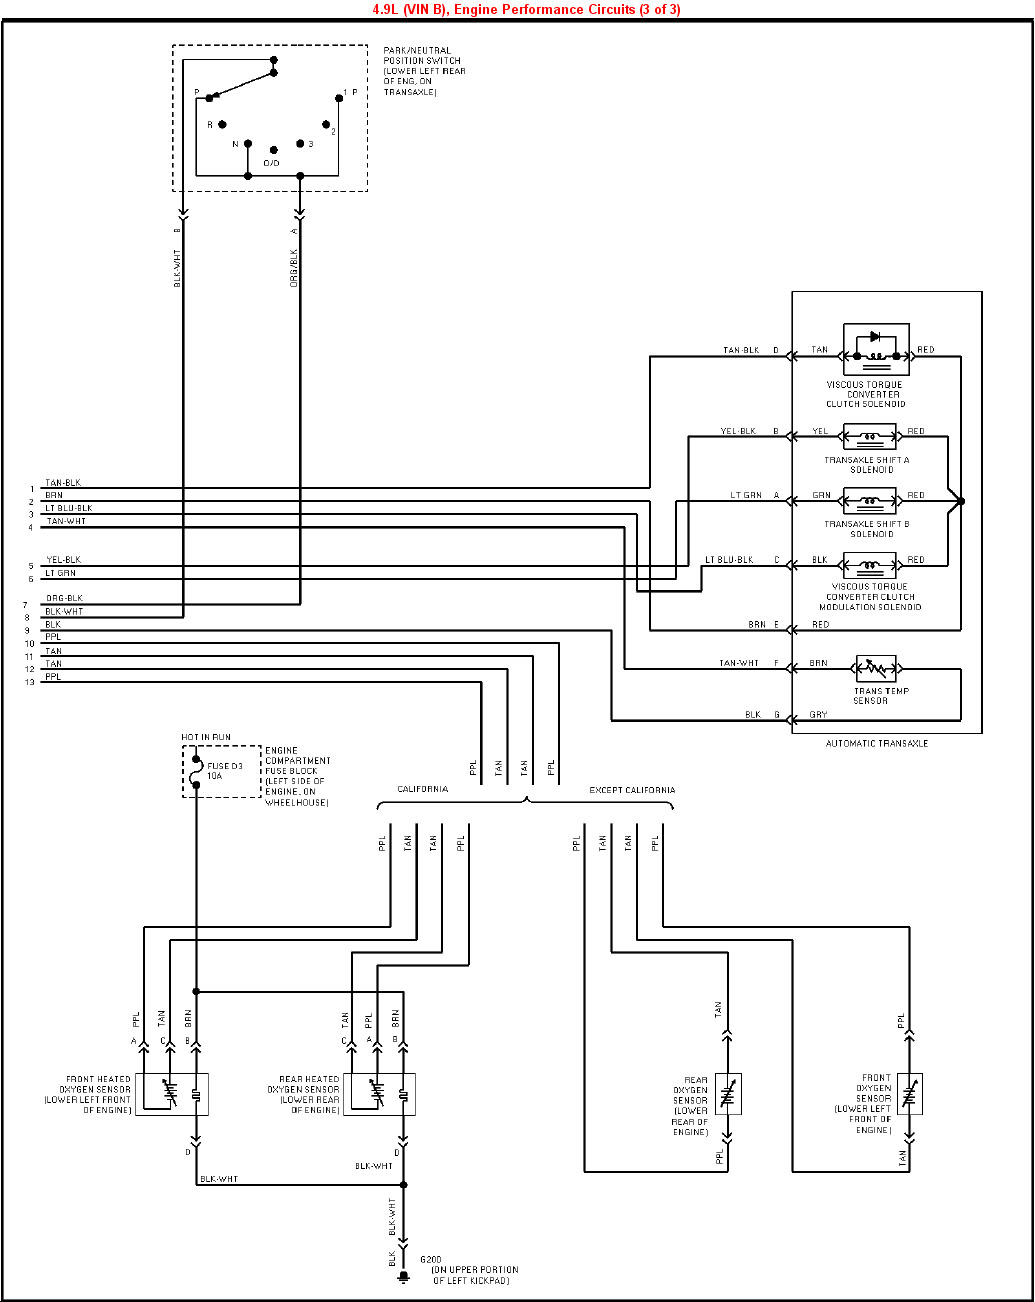 Cadillac Deville Concours Wiring Diagram And Electrical System 97 Toyota Power Antenna 1995 28 Images